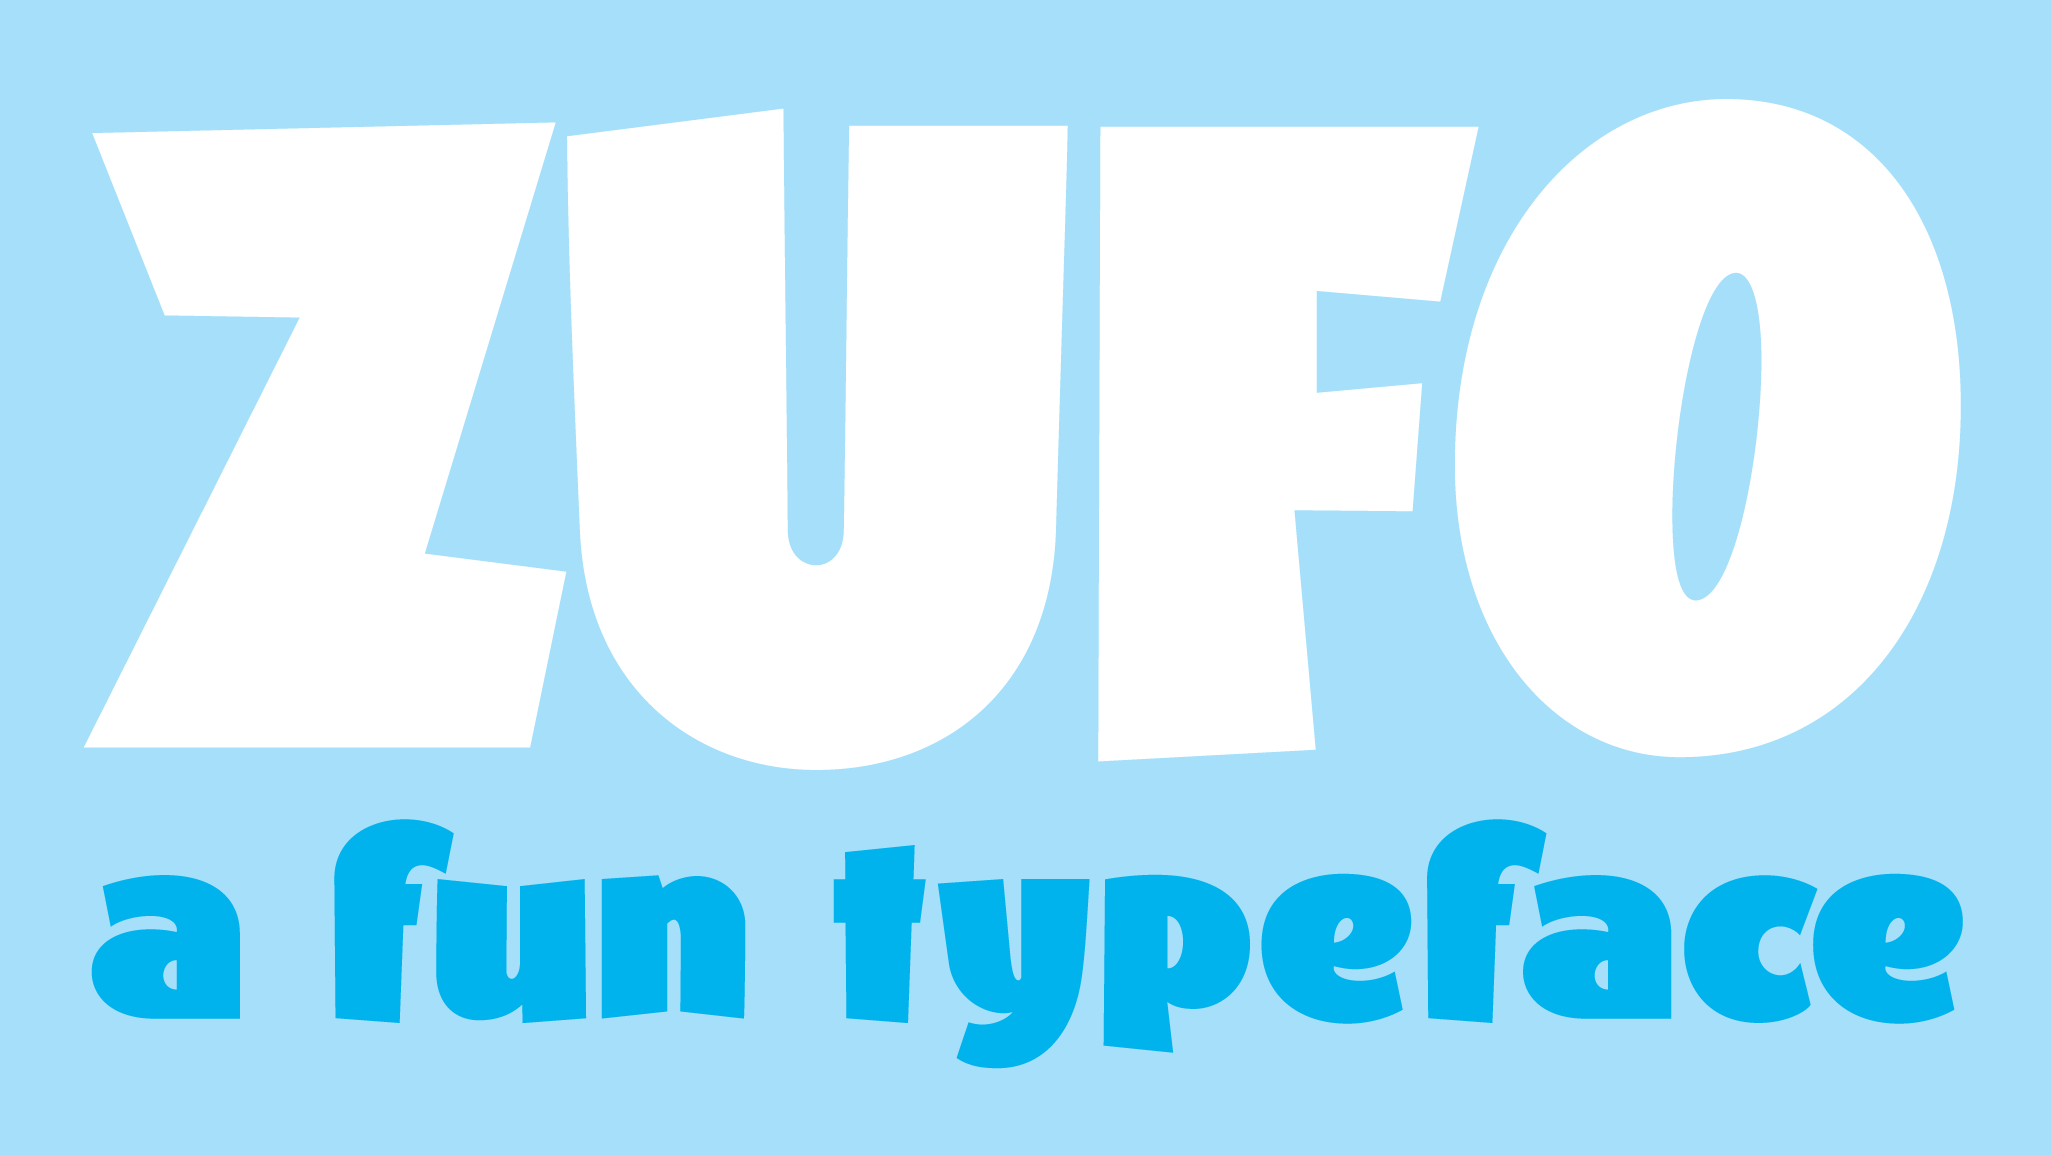 Zufo is a new typeface designed by Andrei Robu. Available on www.typeverything.com